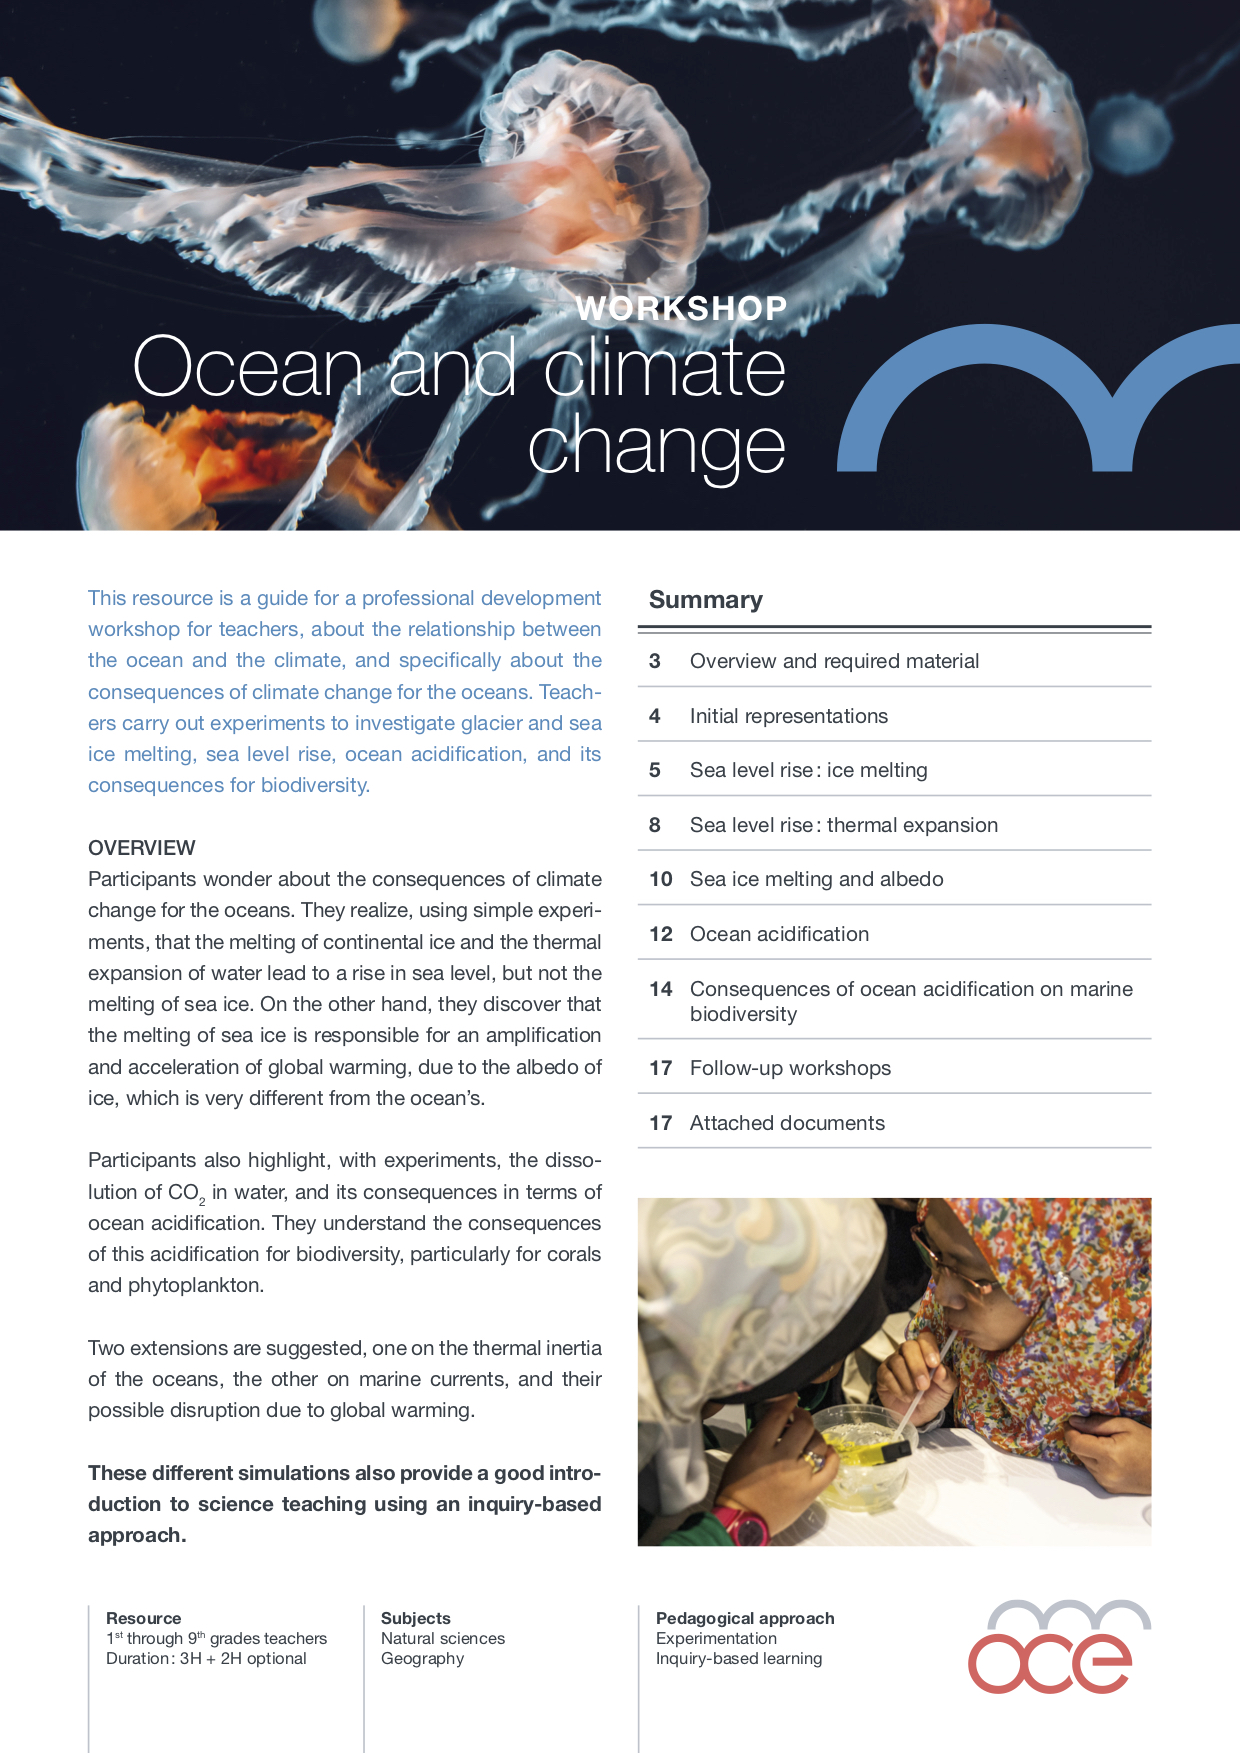 Ocean and cliamte change resource cover